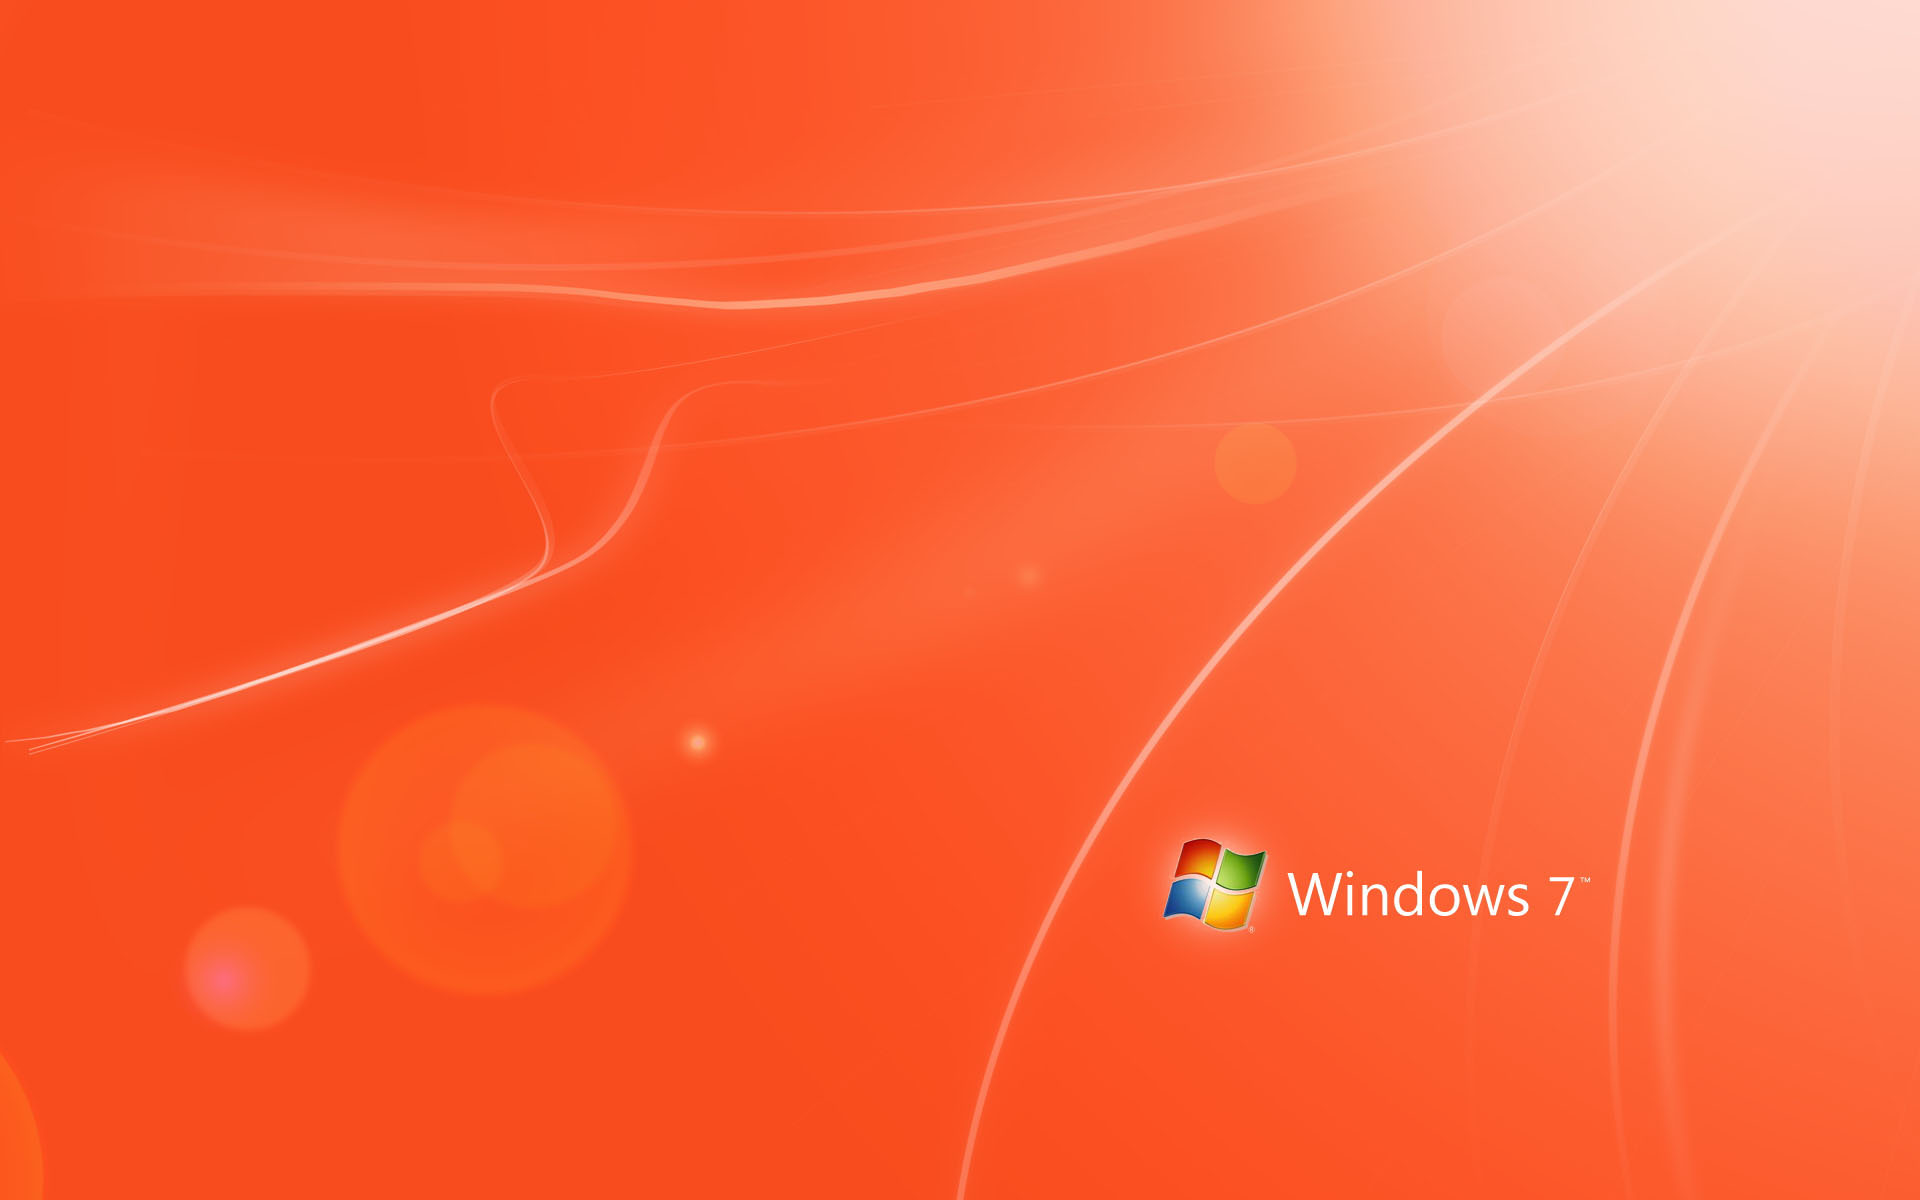 Windows  HD Backgrounds  Wallpaper  1920x1200